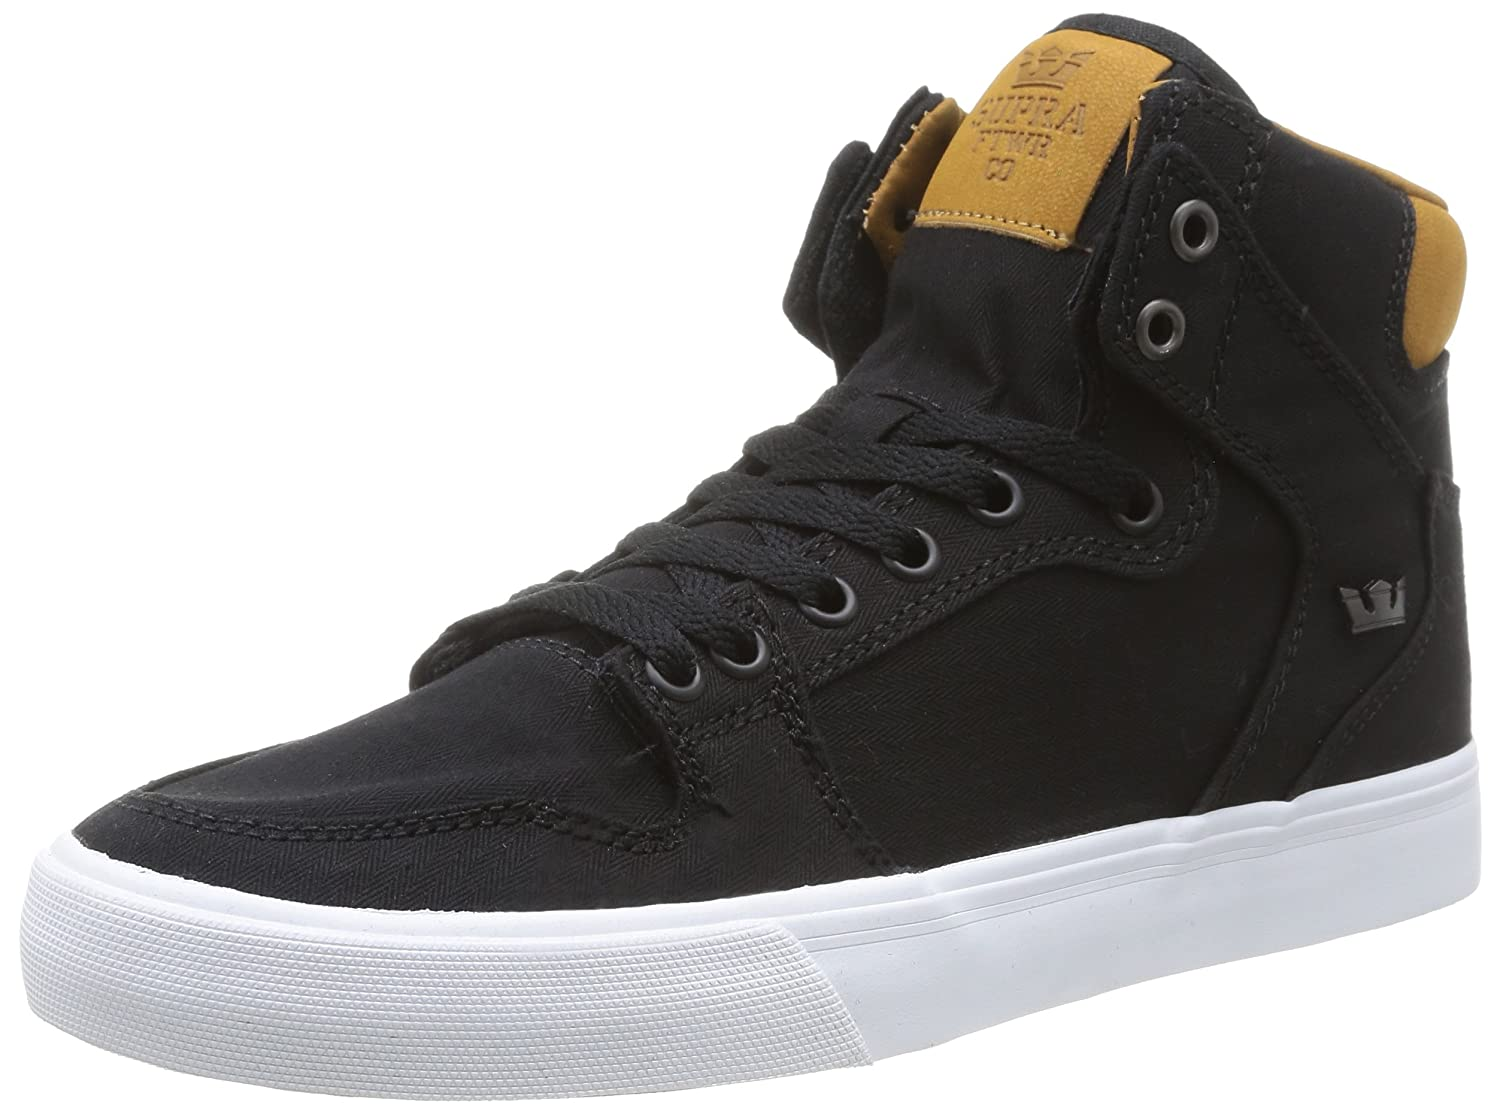 Supra Vaider LC Sneaker B00LU0I1MI Medium / 11.5 C/D US Women / 10 D(M) US Men|Black/Brown/White